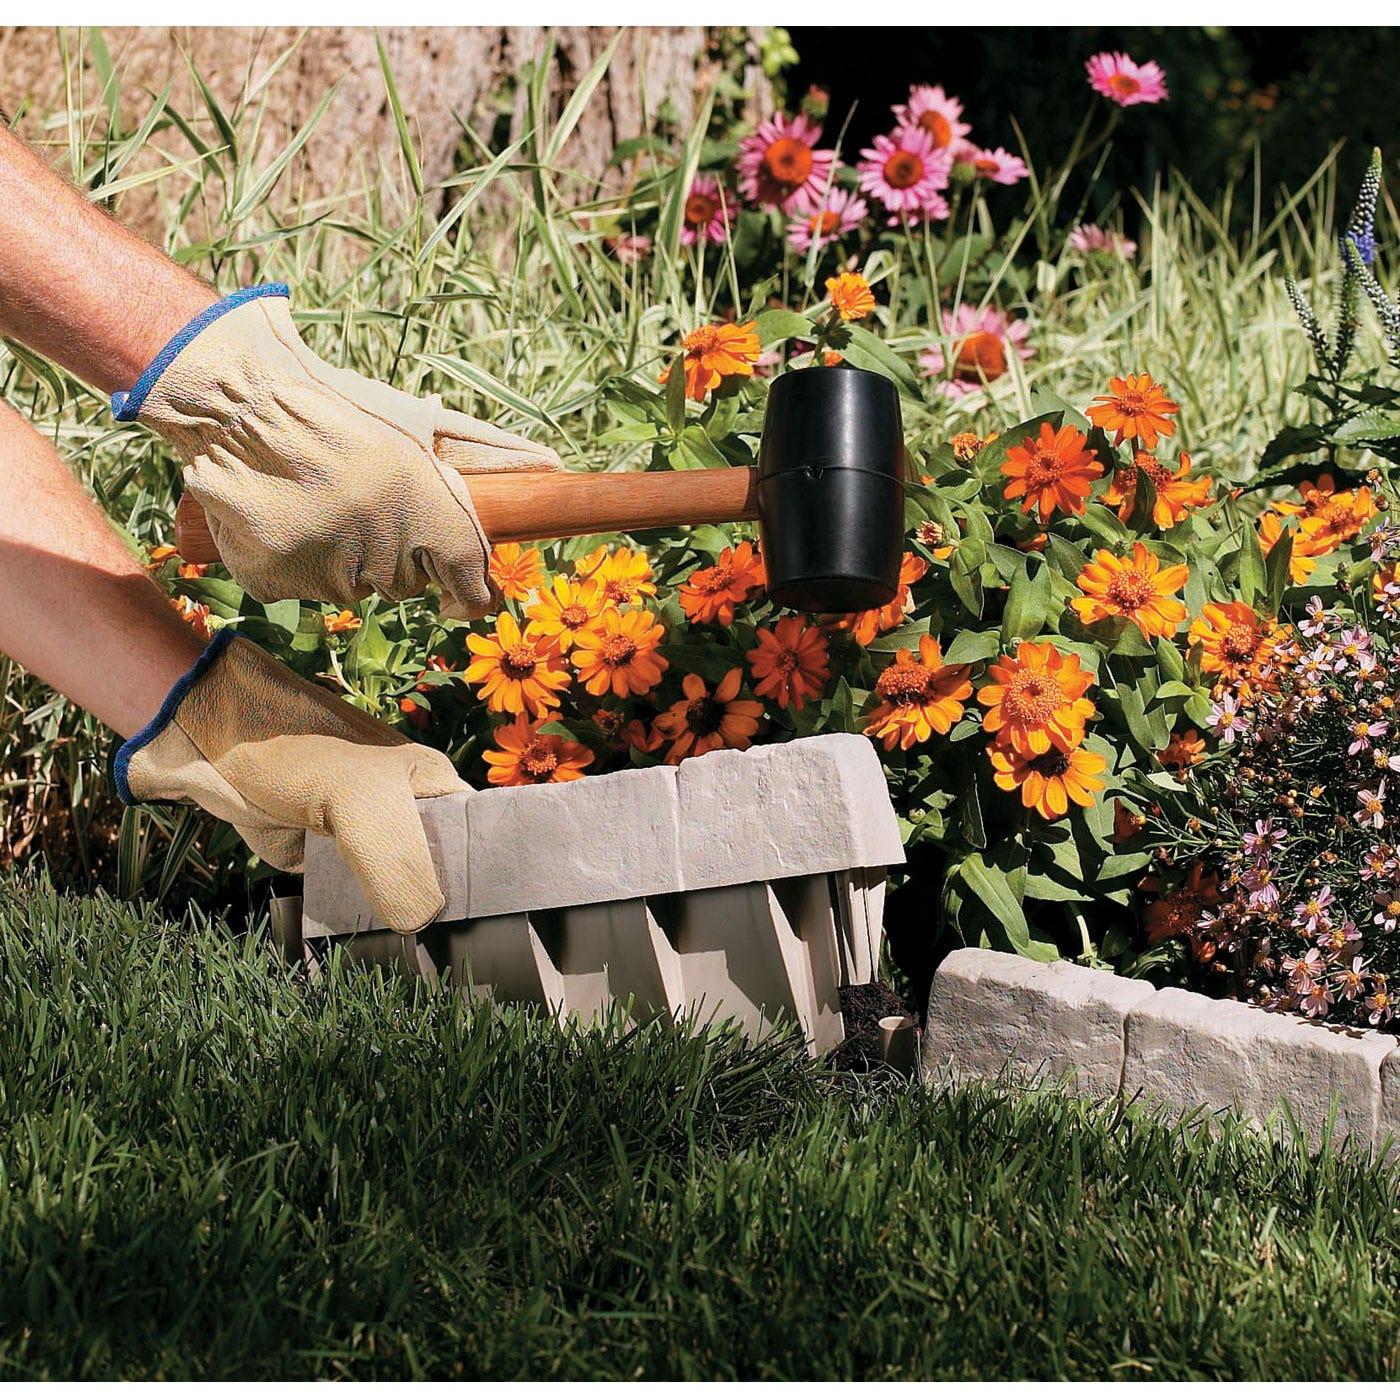 Stone Edger: From Sporty's Tool Shop